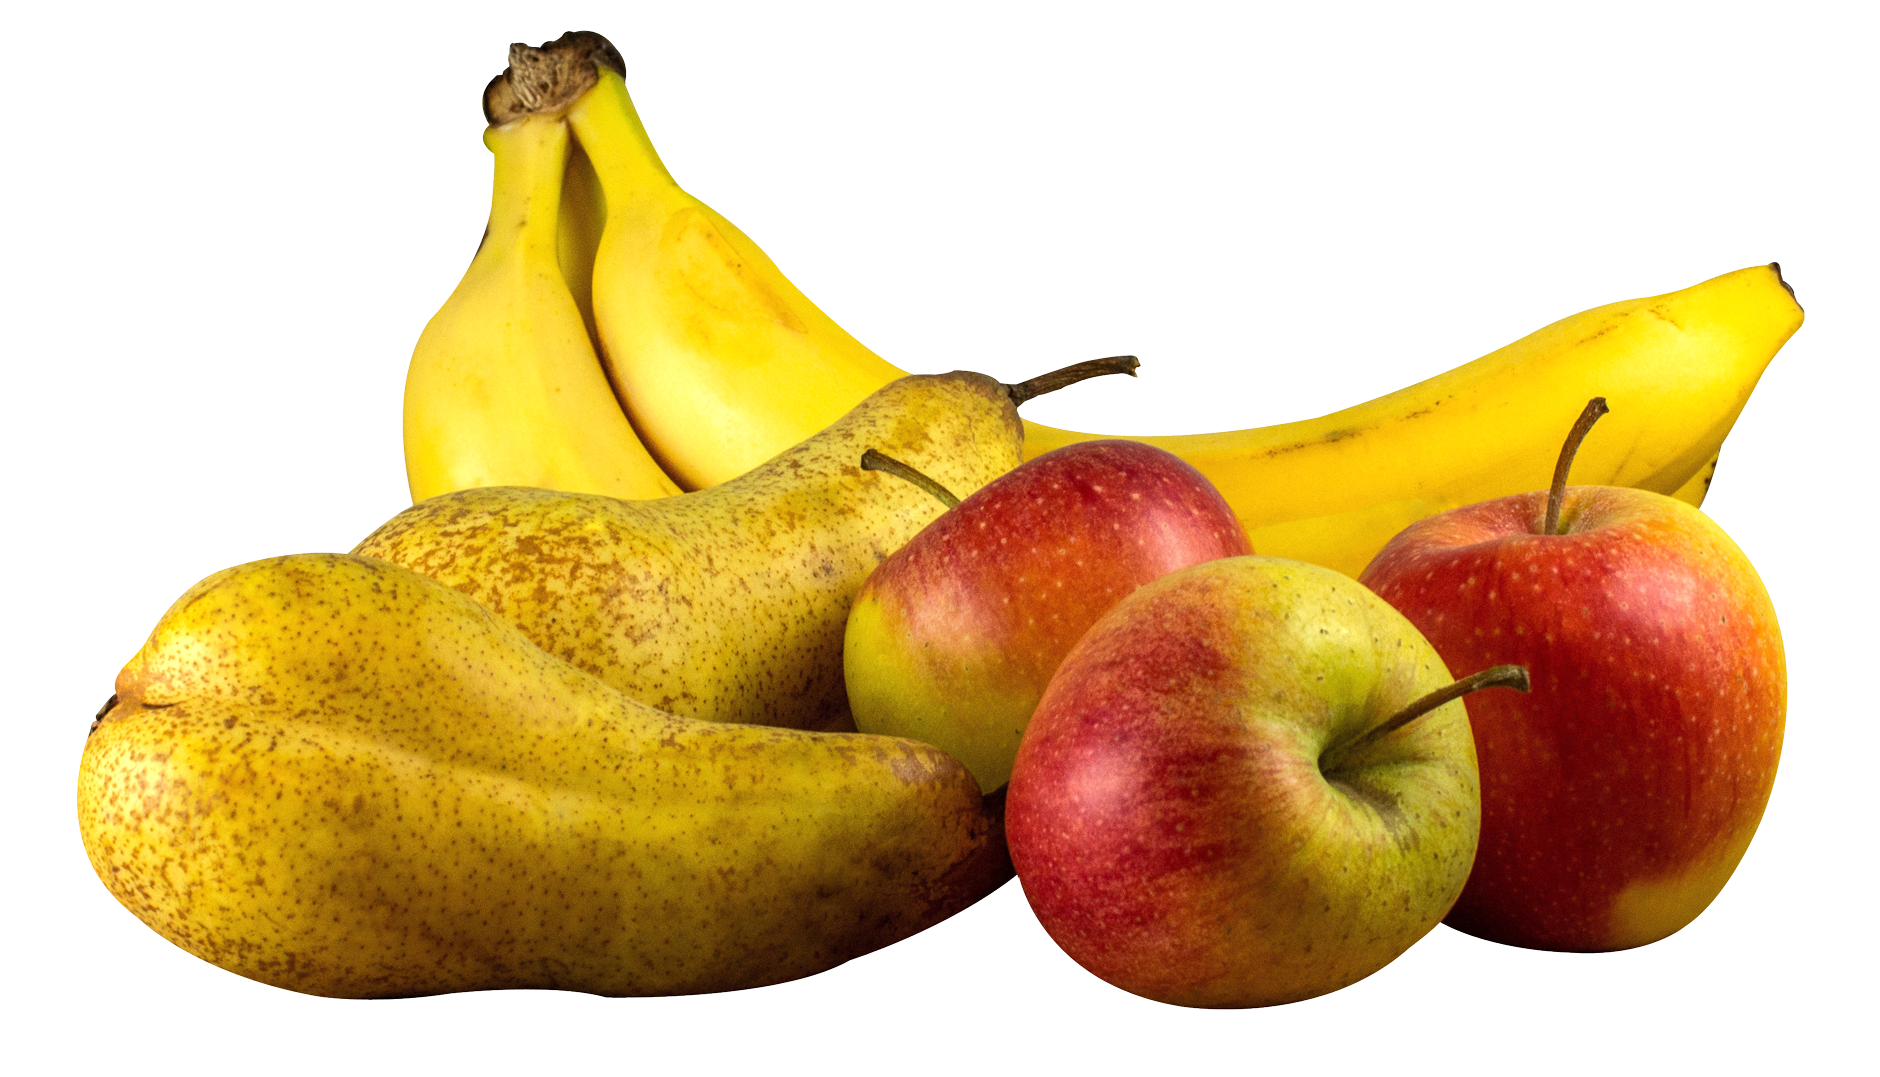 Fruit png. Fruits transparent image pngpix